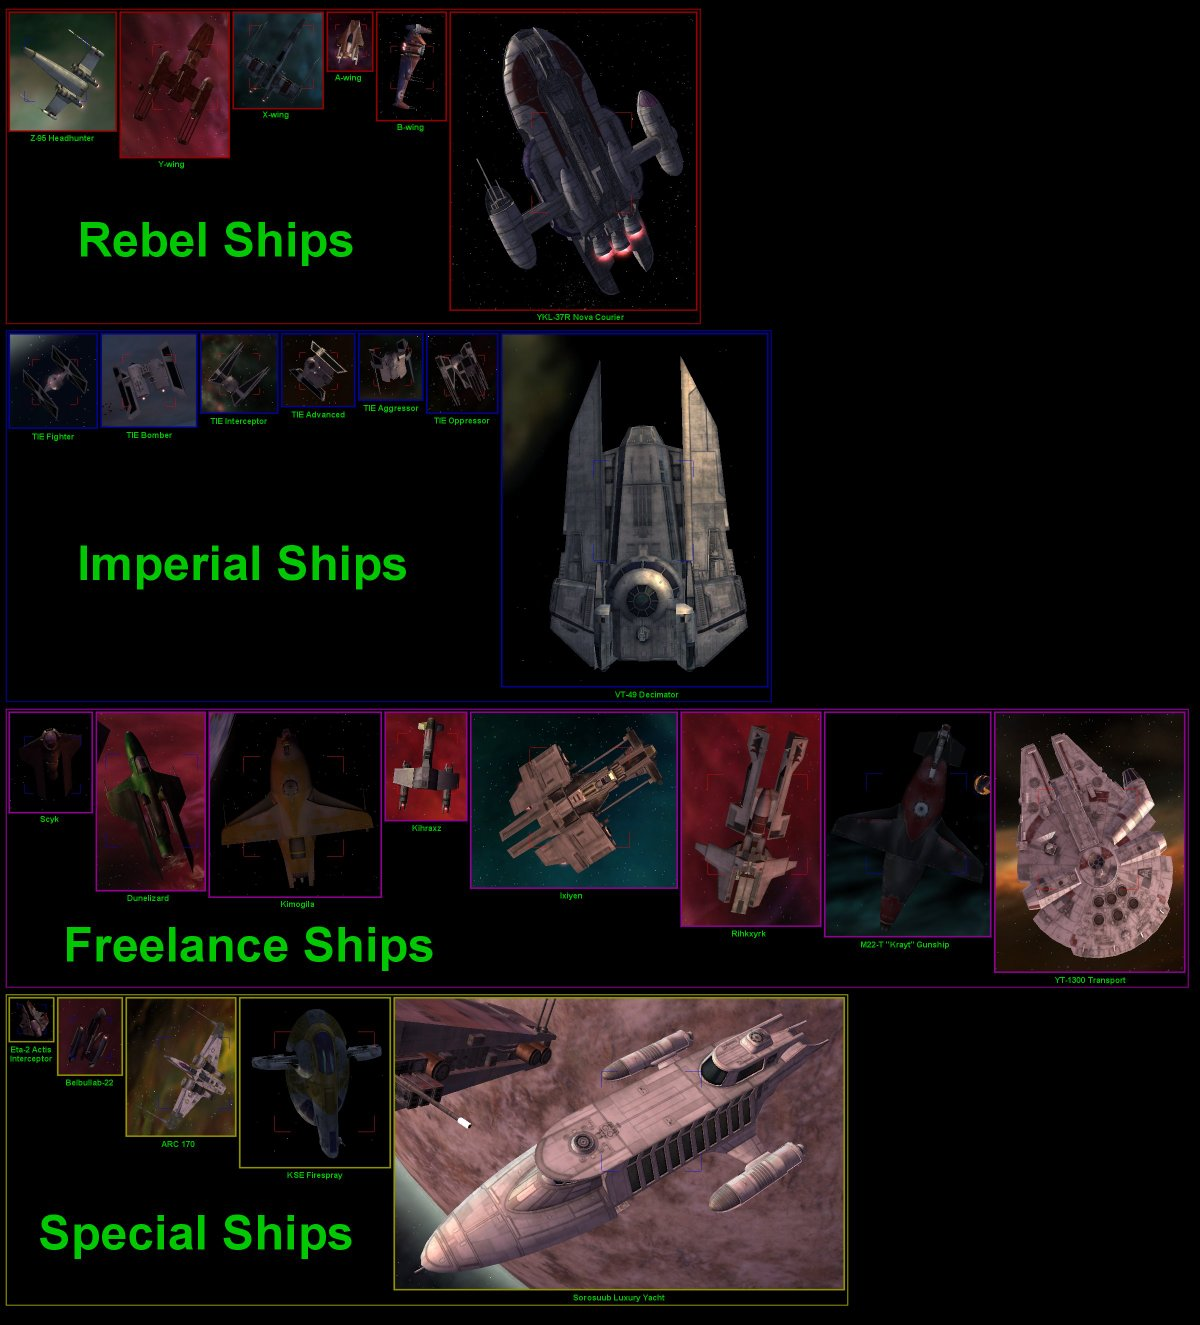 Galaxy Quest Ship: Complete Ship Stats And Pictures